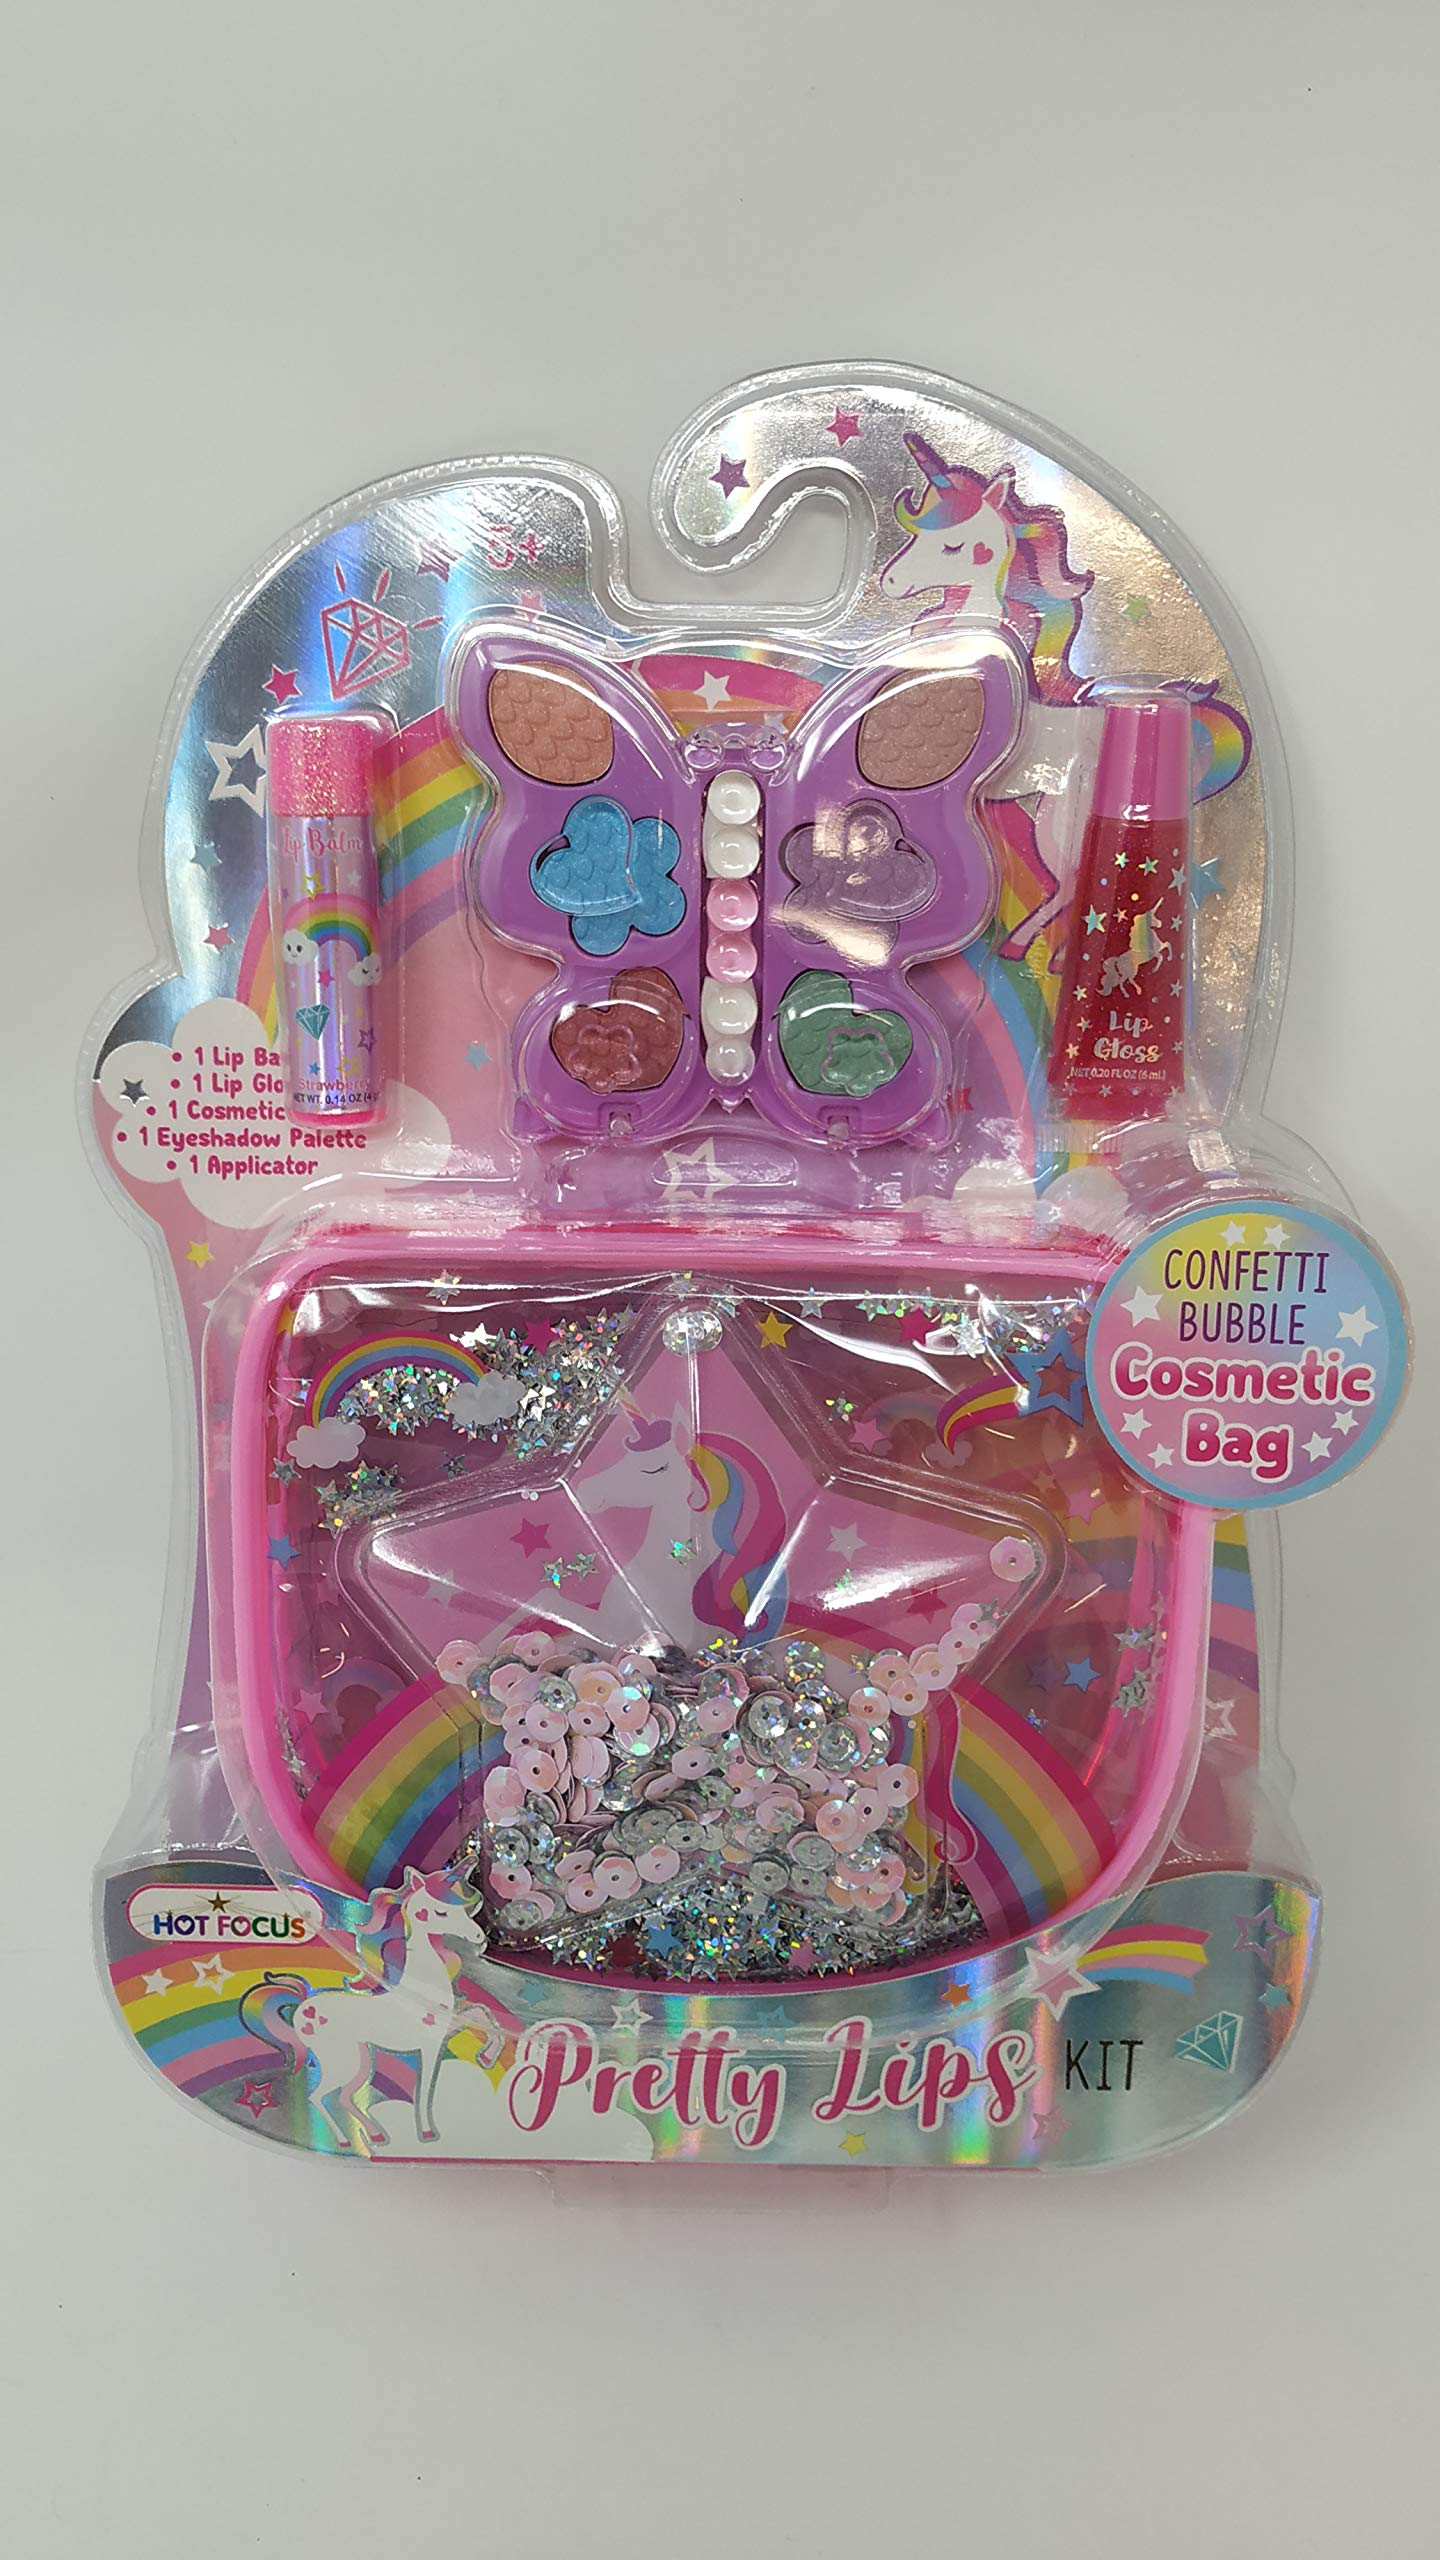 Hot Focus Pretty Lips Beauty Kit, Caticorn. 1 Clear